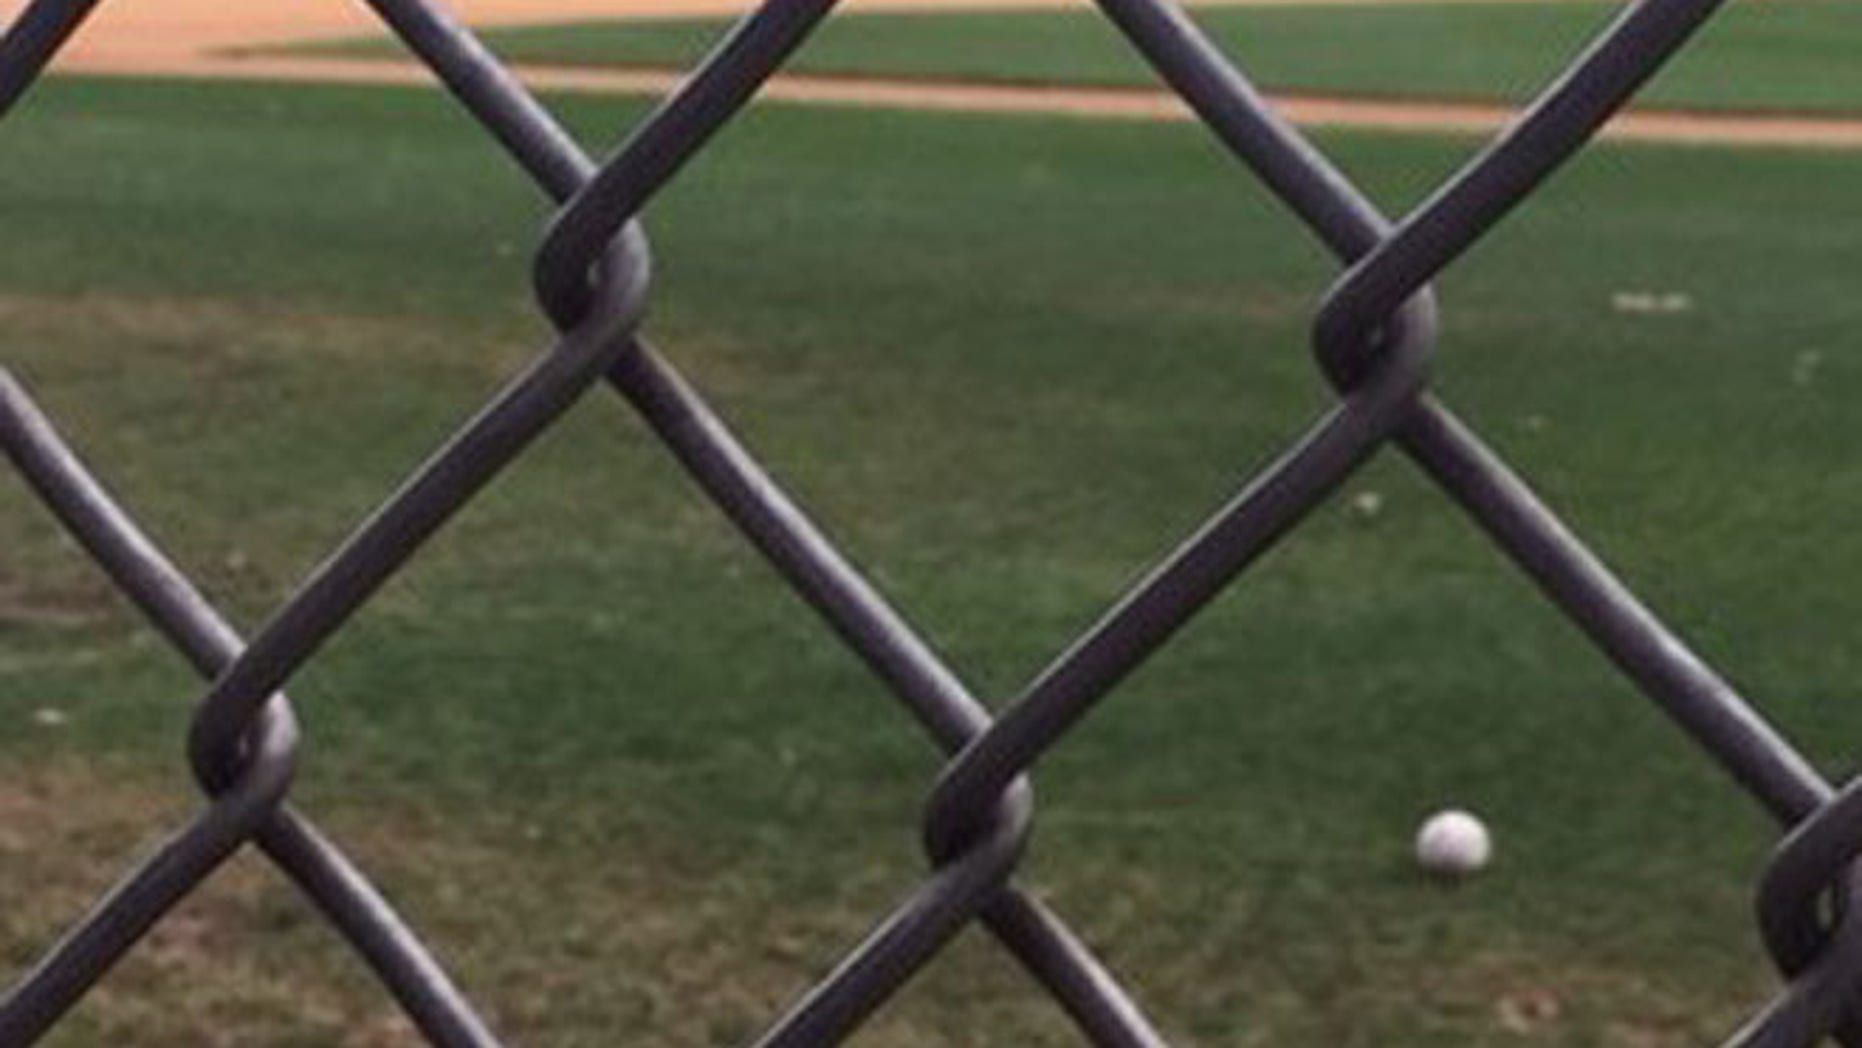 A baseball rests on the Alexandria, Va., field where a congressional baseball practice was attacked.